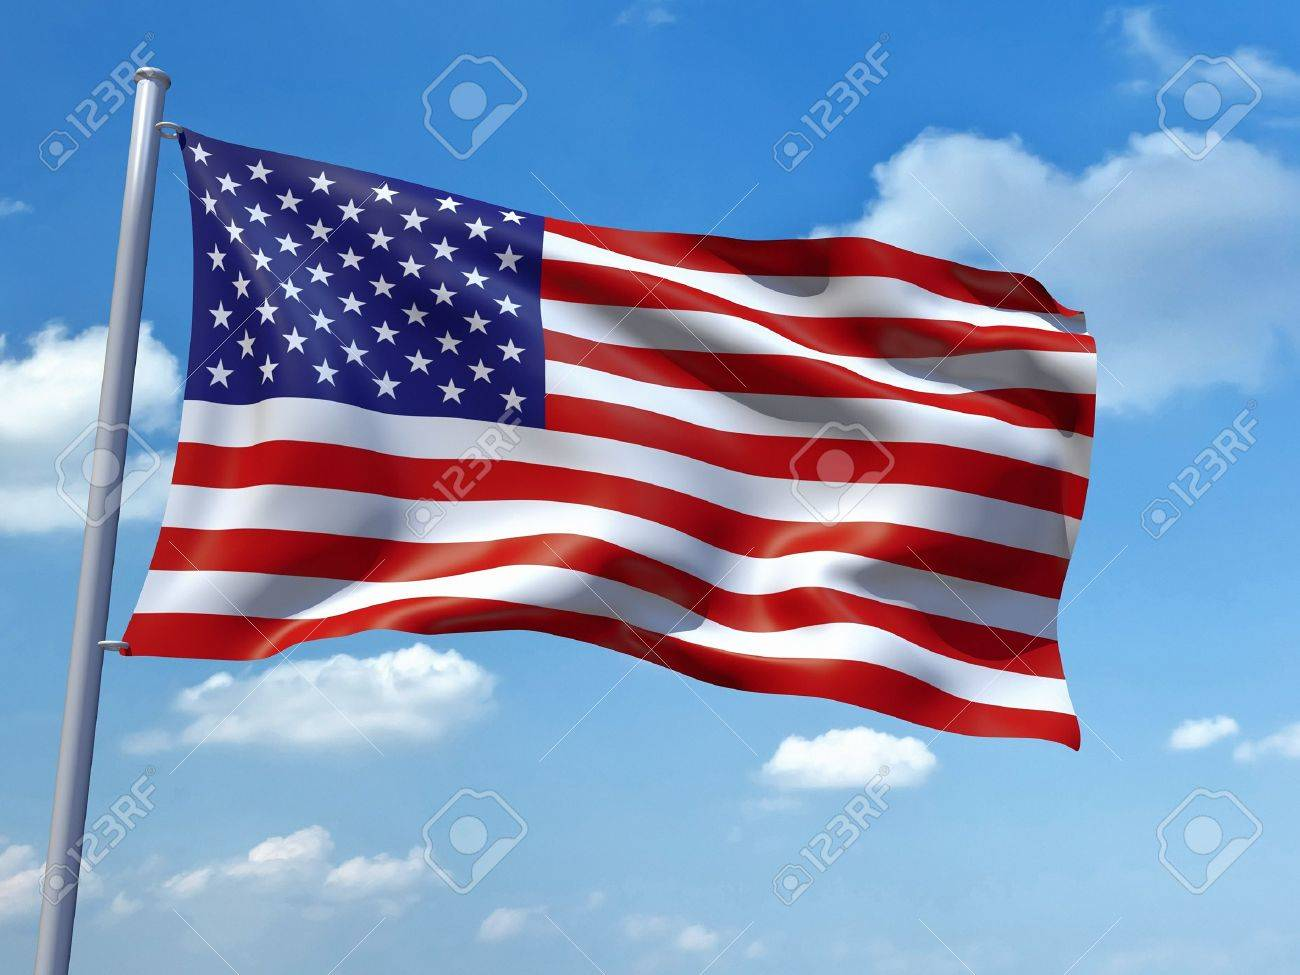 An image of the United States of America flag in the blue sky Stock Photo - 9133647